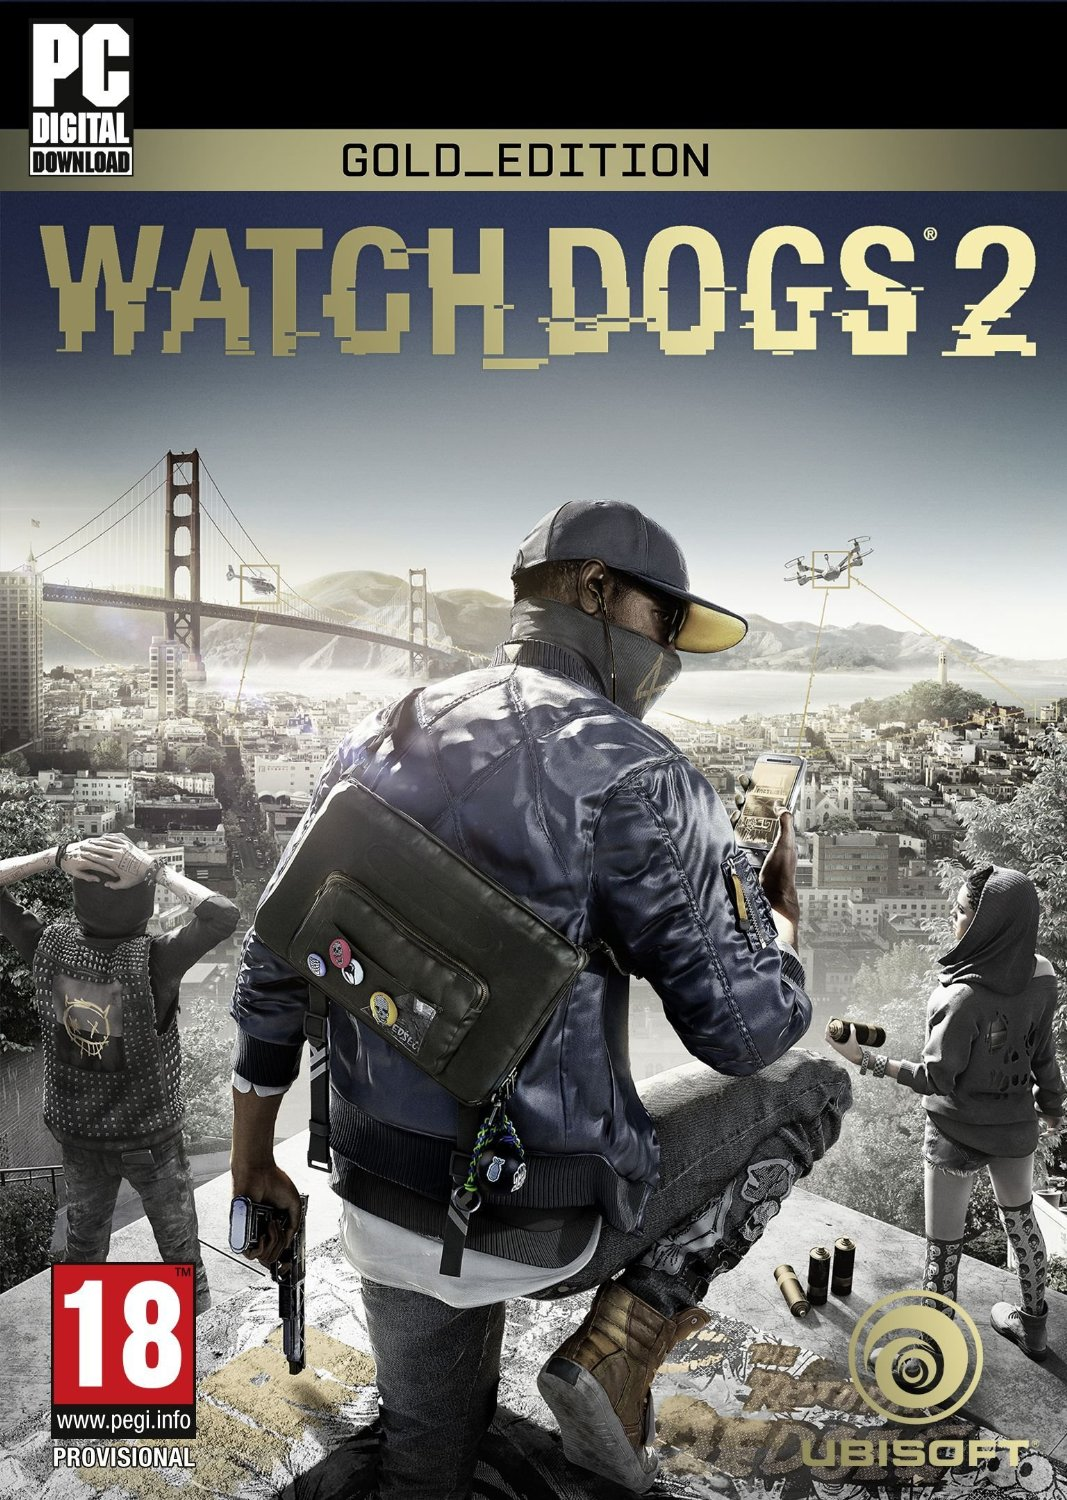 http://img5.downloadha.com/hosein/Game/November%202016/28/Watch-Dogs-2-Gold-Edition.v2-pc-cover-large.jpg